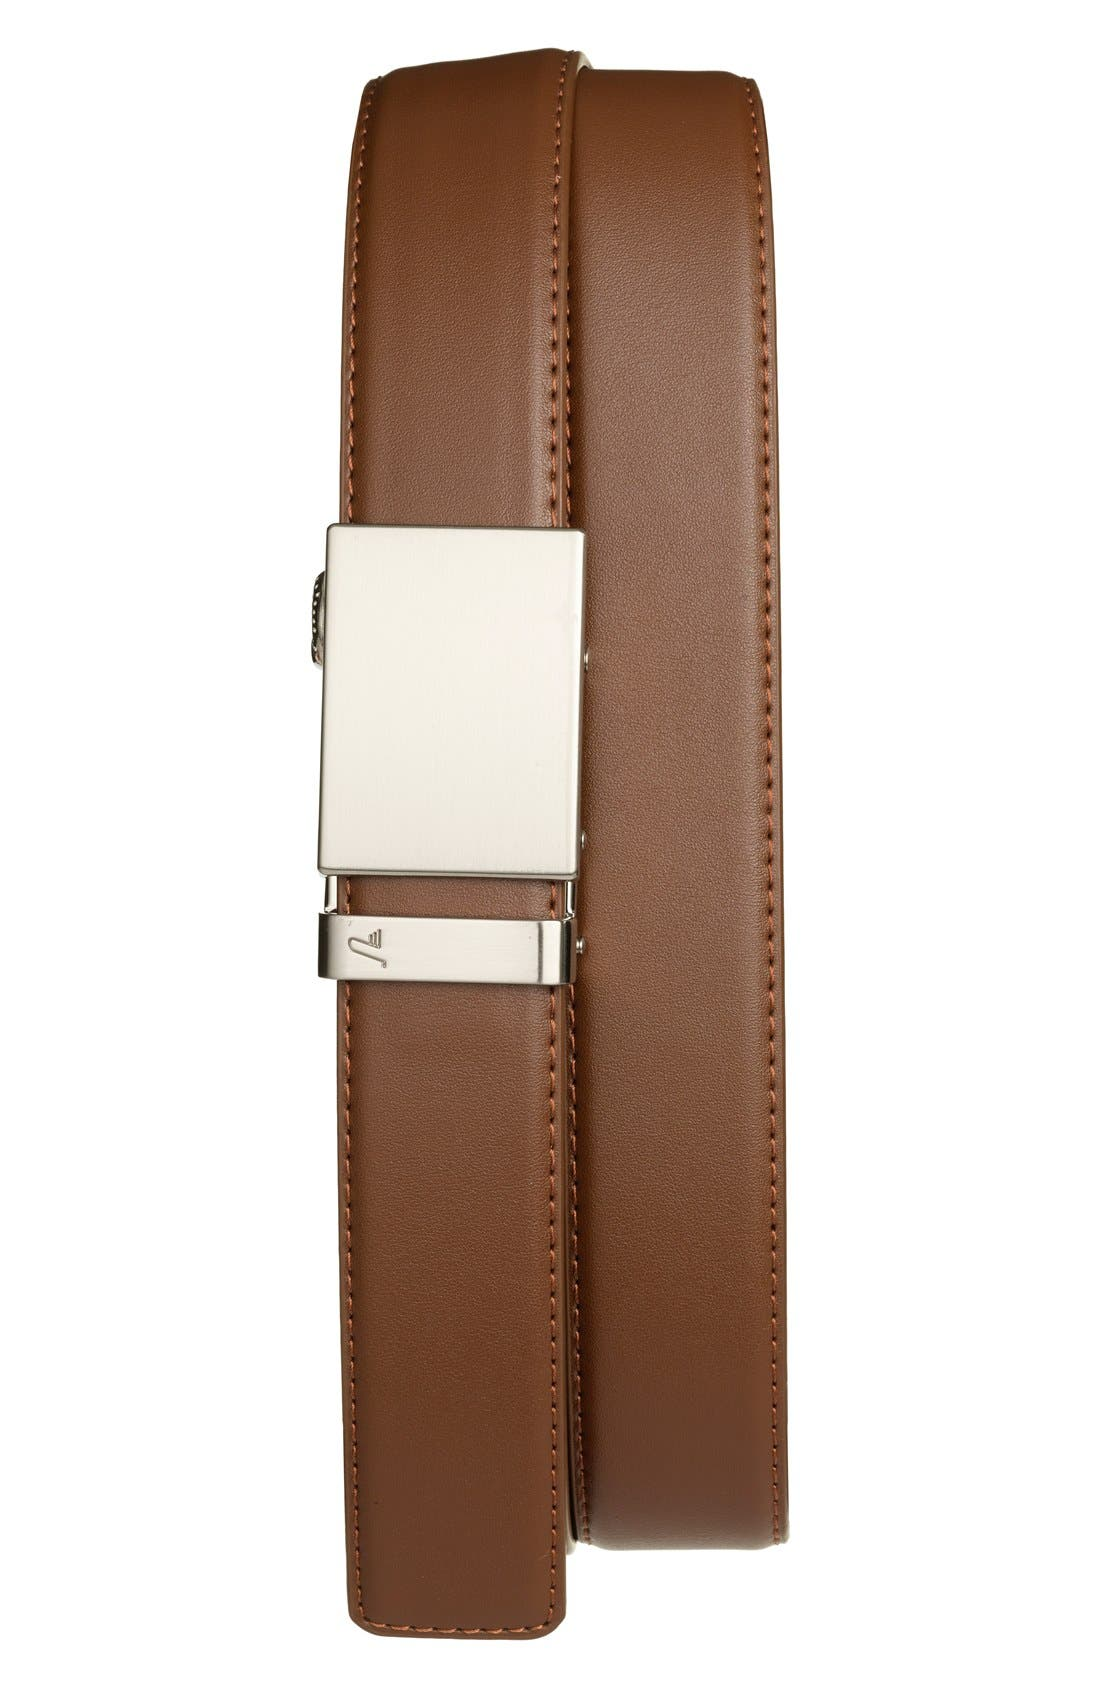 Alternate Image 1 Selected - Mission Belt 'Steel' Leather Belt